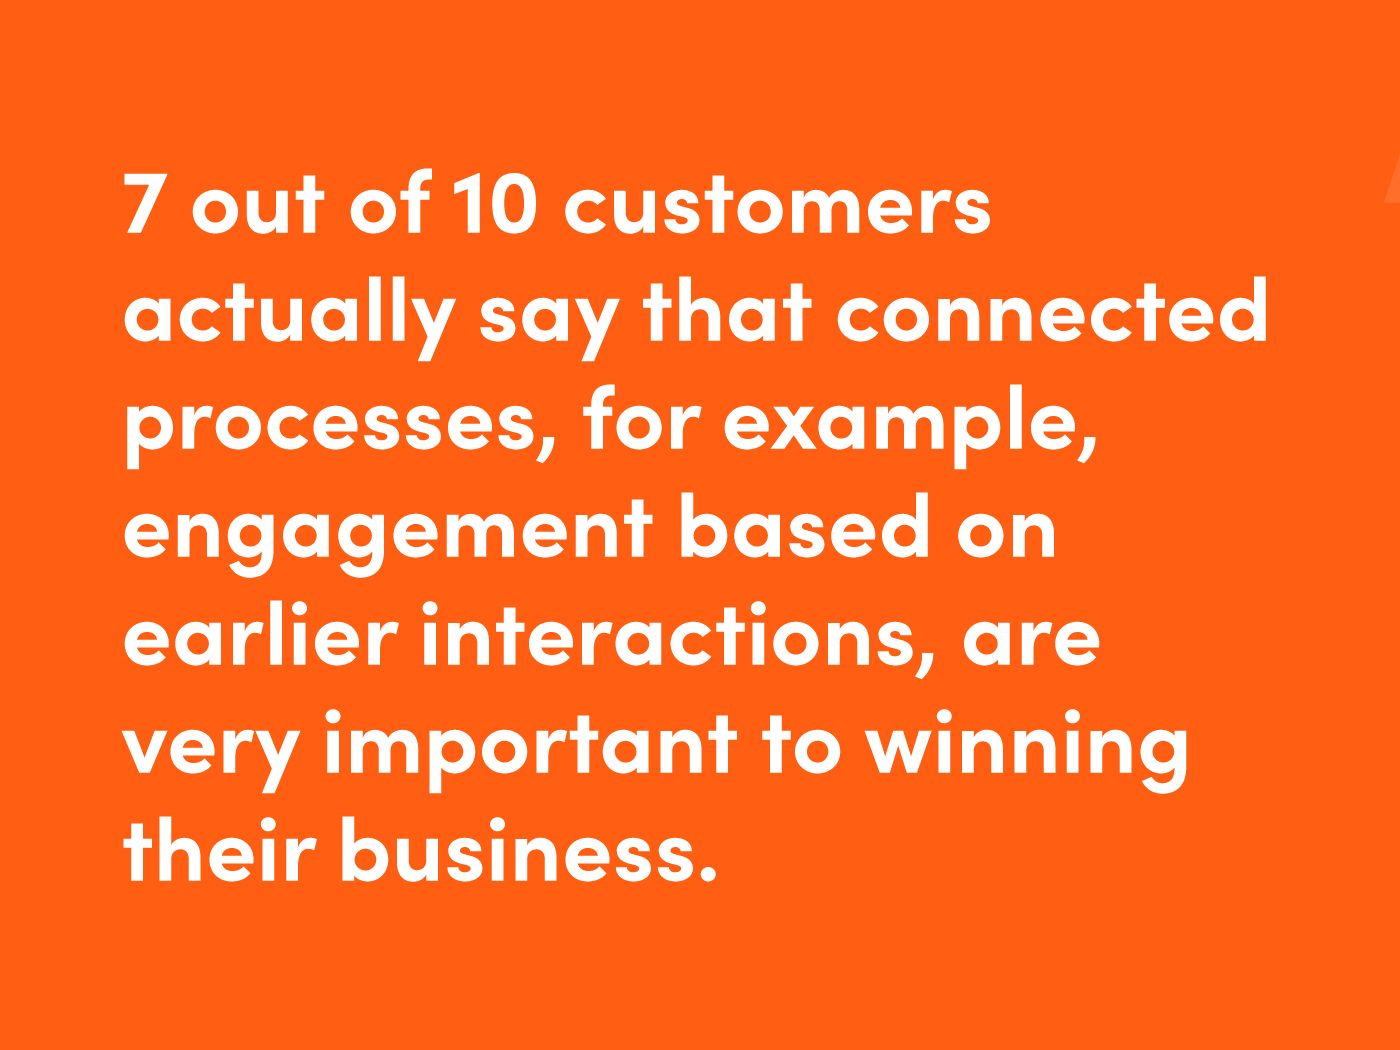 Connected services are important for customers